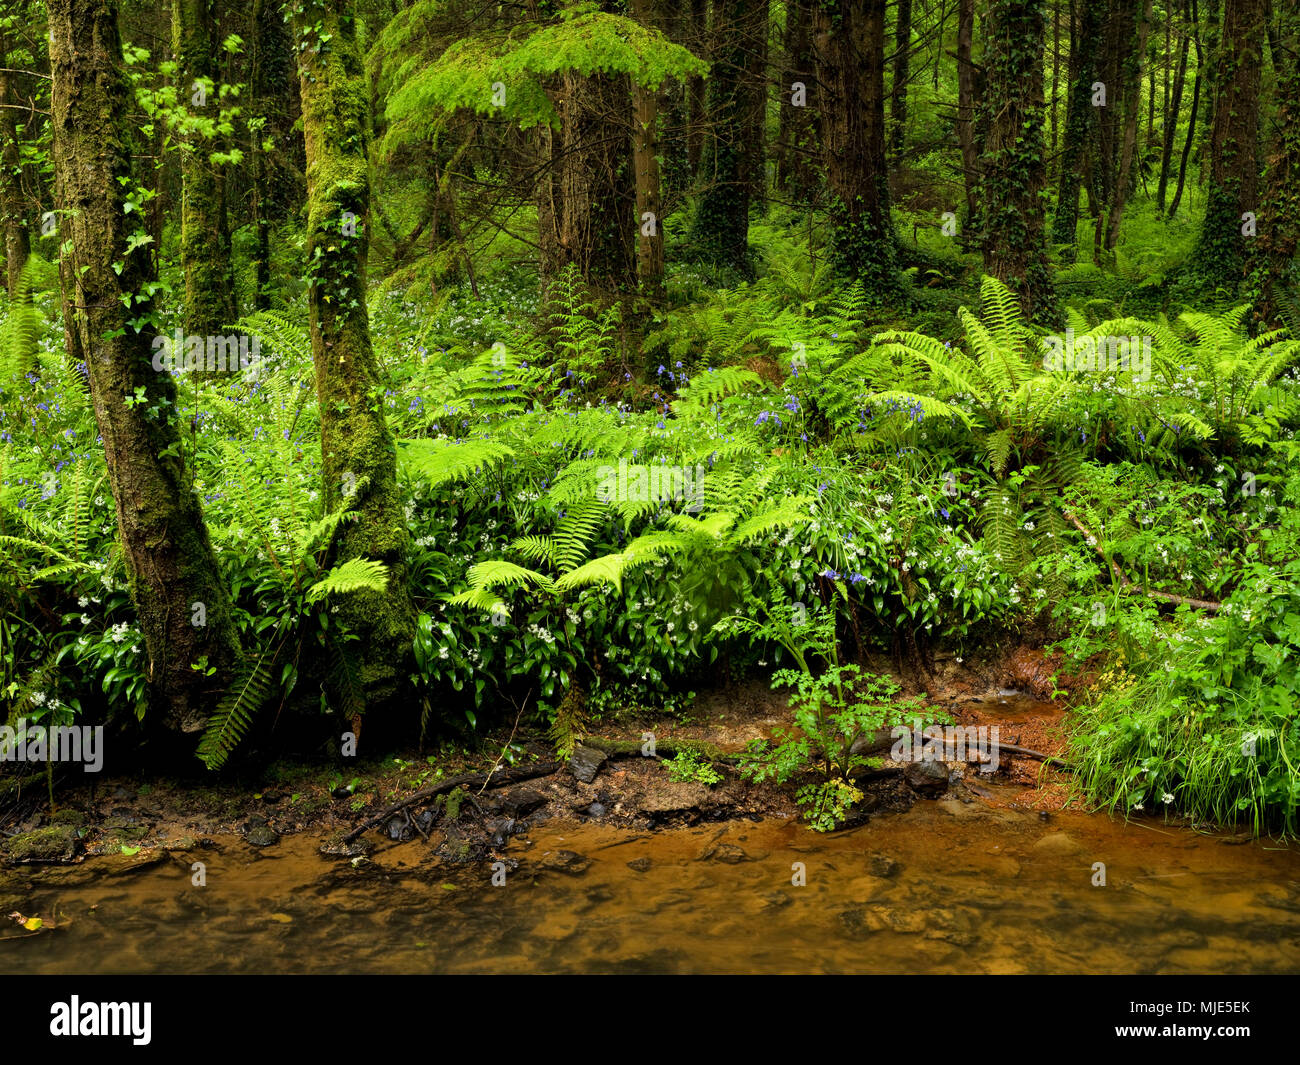 Ireland, Wexford county, stream course with blossoming wild garlic in the coastal primeval forest of the Hook pensinsula, forest of beeches, spruces, ferns, ivy - Stock Image